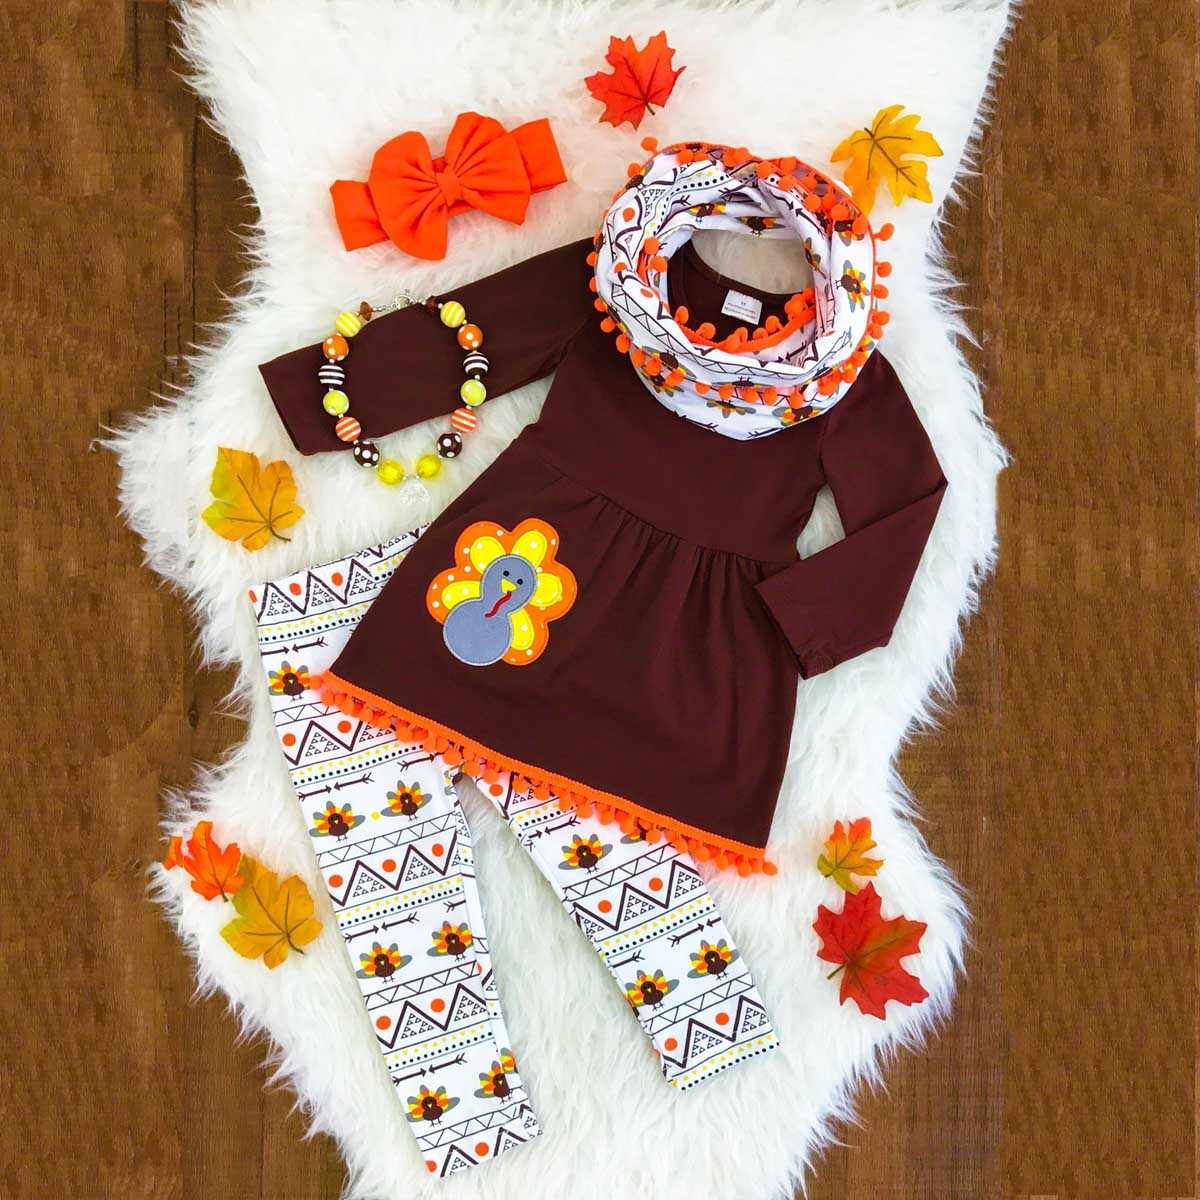 Kids Baby Girls Turkey Outfits Clothes Dress Tops T Shirt + Long Pants Set pudcoco Thanksgiving Day Turkey Long Sleeve set цена 2017